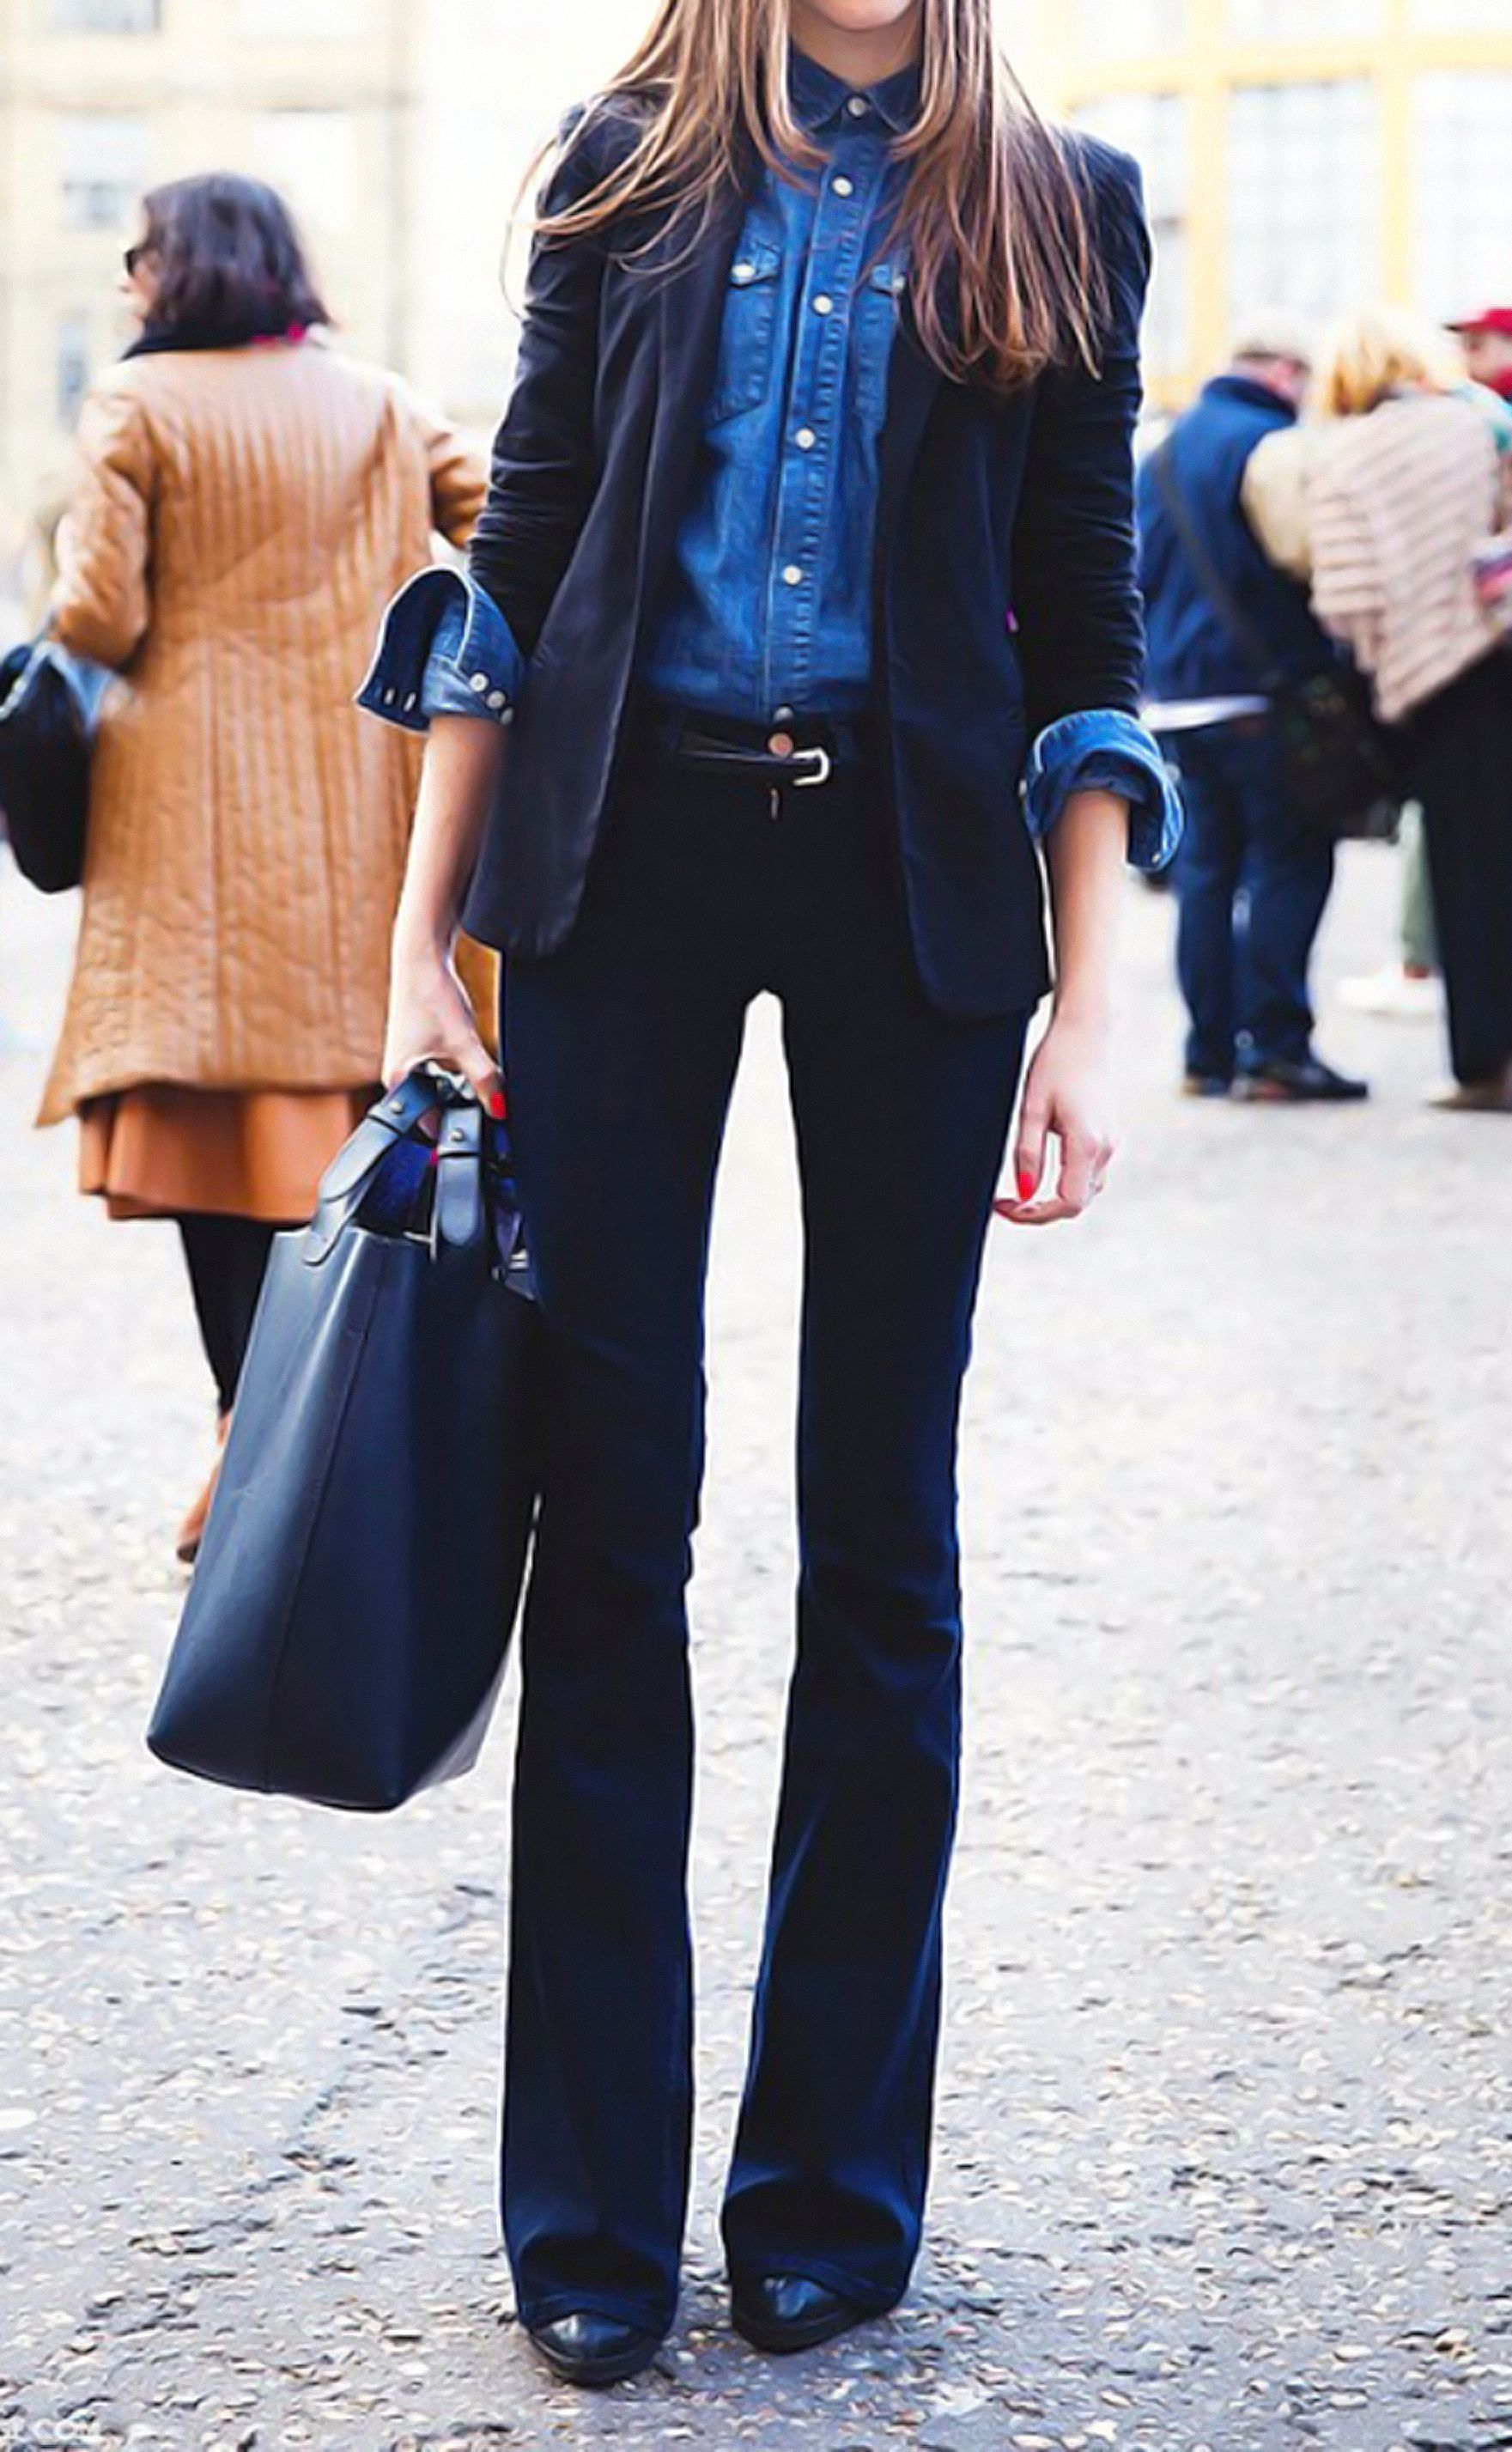 6166f81728b0 A bit of seventies style with the flared jeans and blazer ...